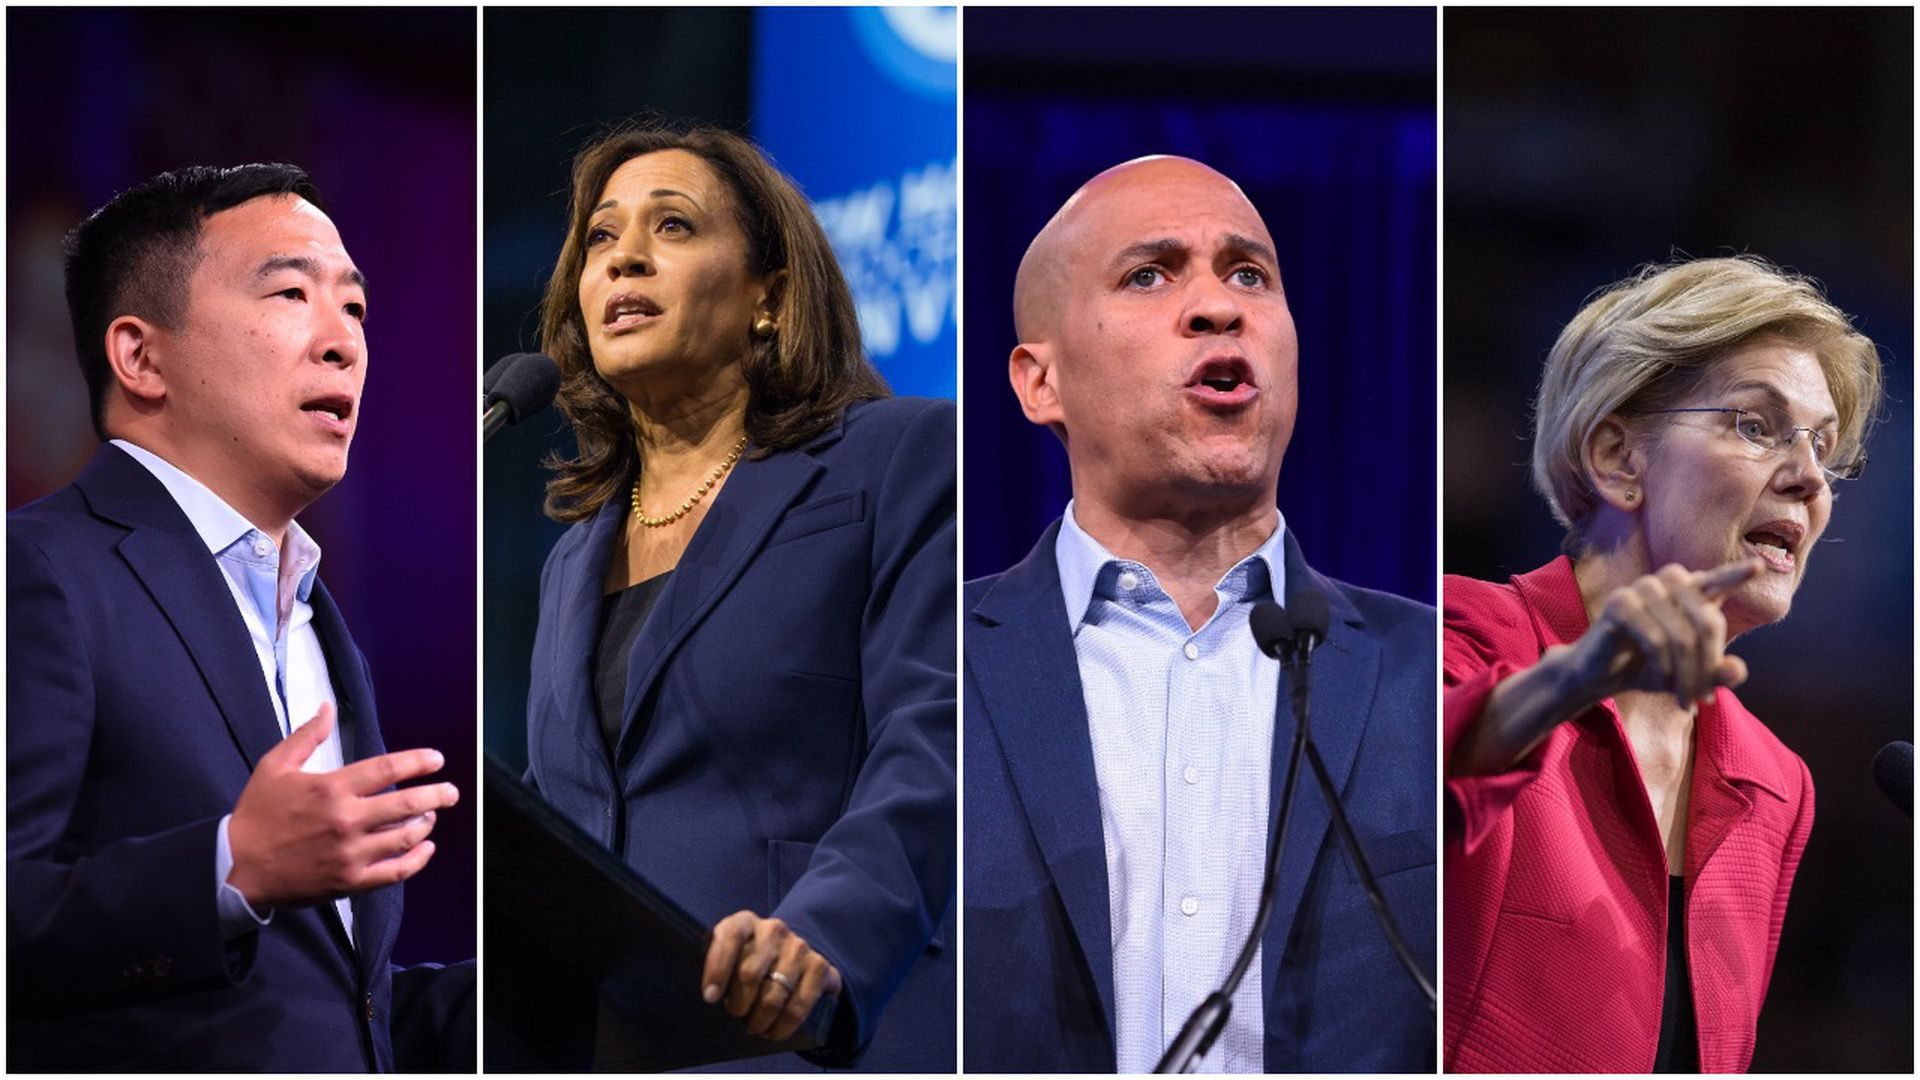 This image is a four-way split between Andrew Yang, Kamala Harris, Cory Booker, and Elizabeth Warren.